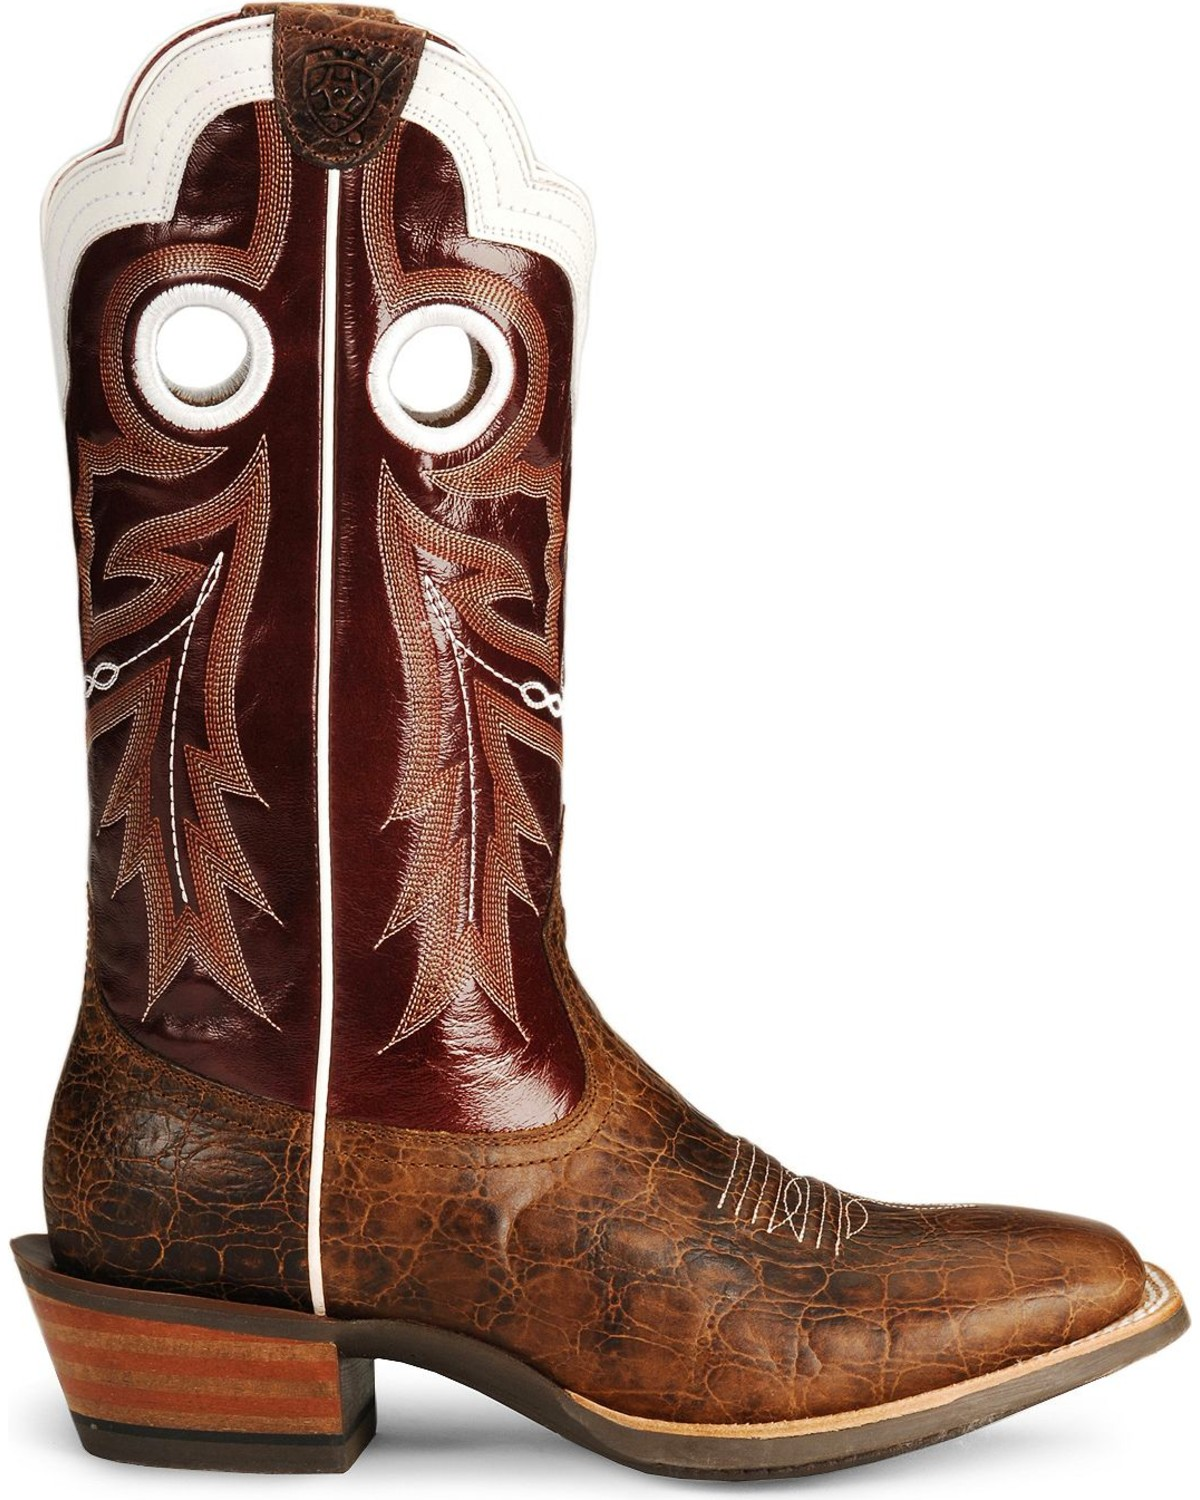 Ariat Wildstock Cowboy Boots - Wide Square Toe | Sheplers